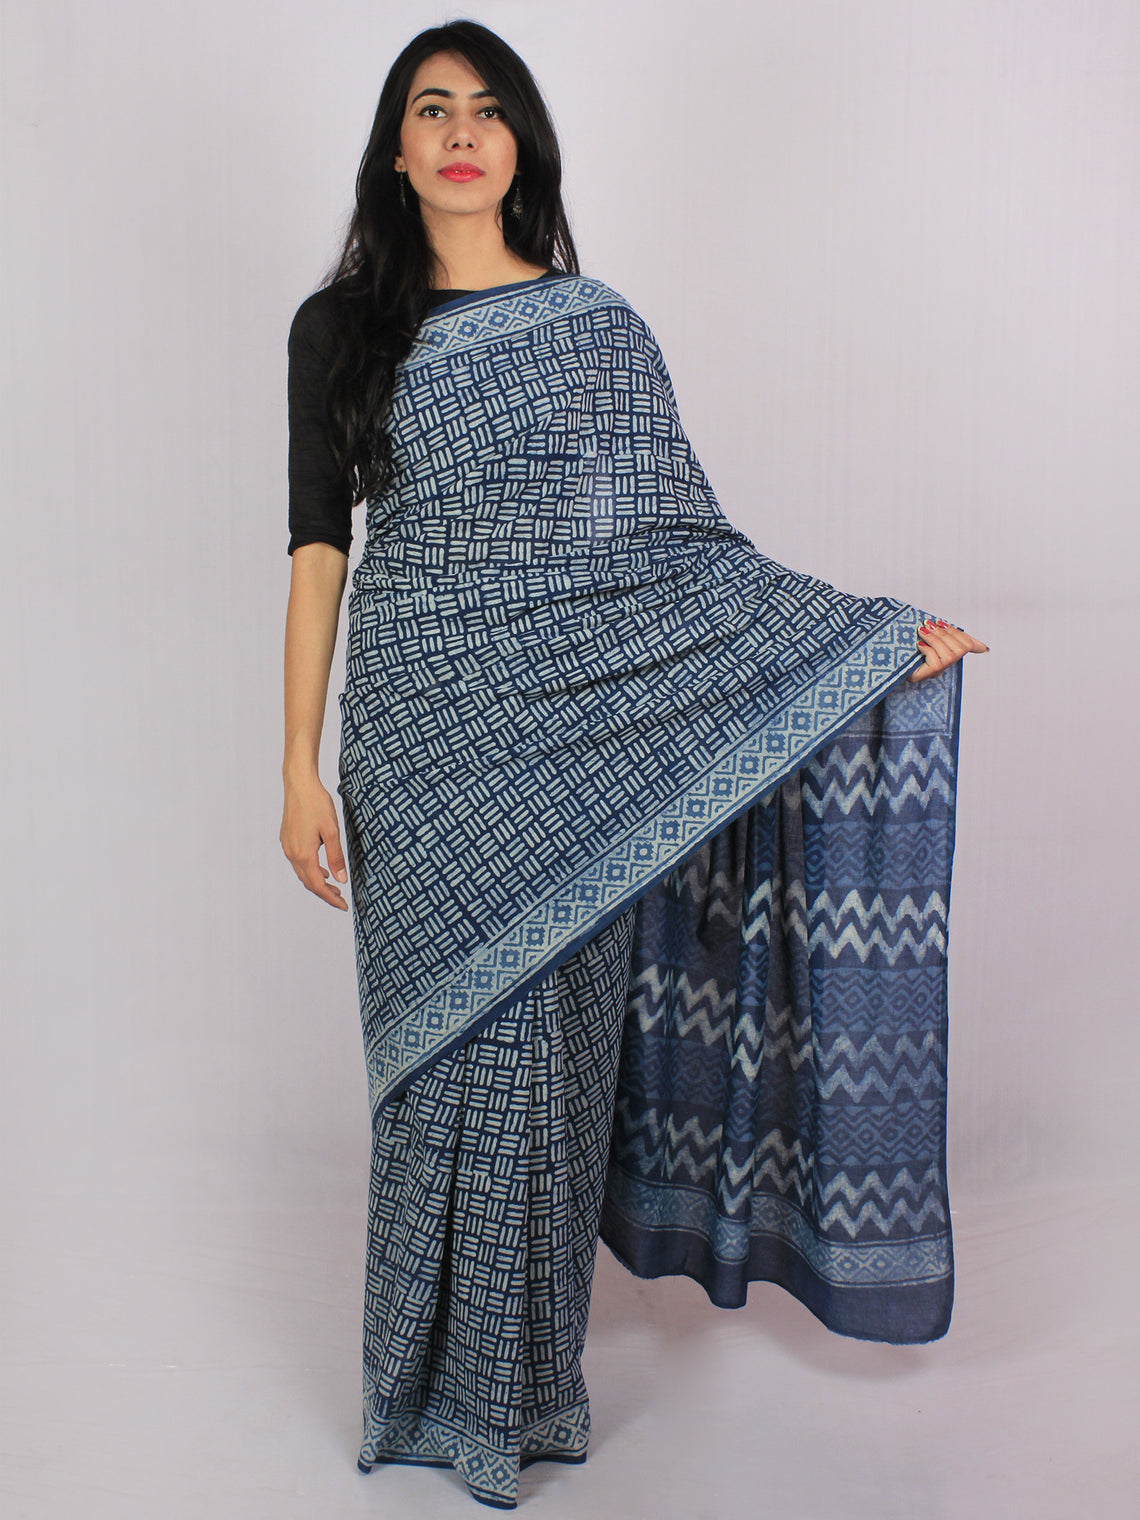 Indigo Ivory Cotton Hand Block Printed Saree in Natural Colors - S031701191